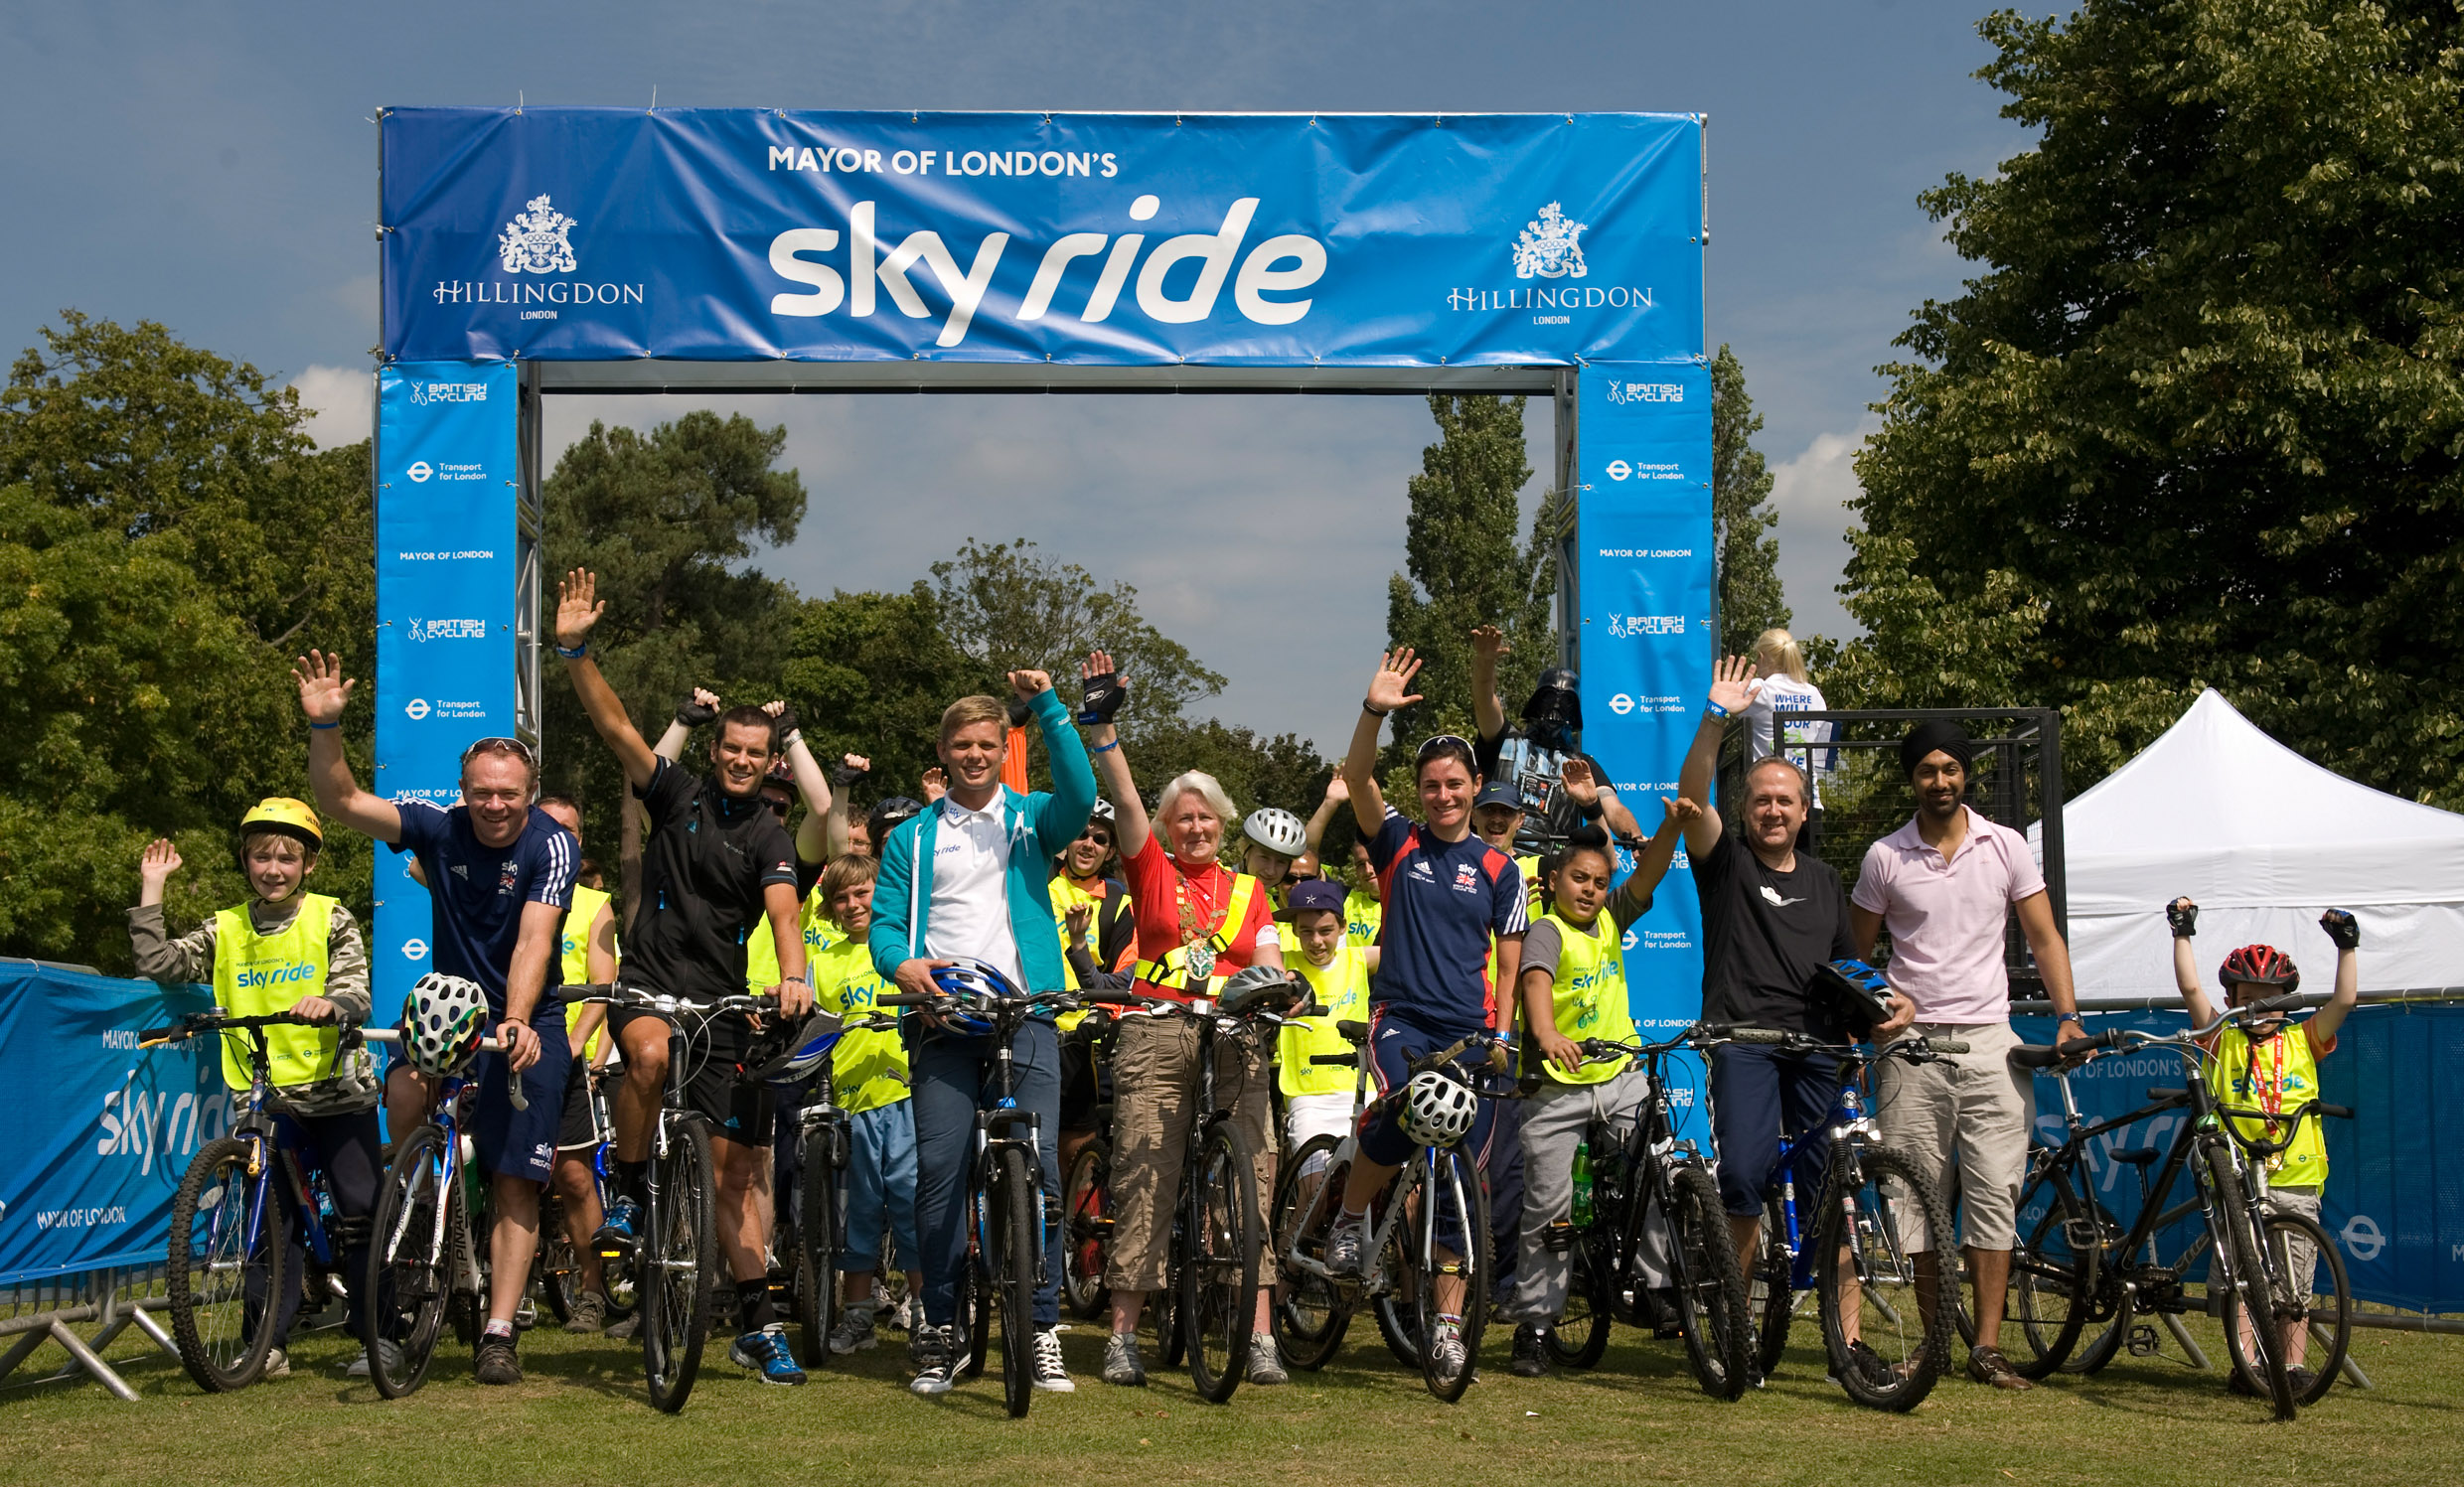 hillingdon_sky_ride